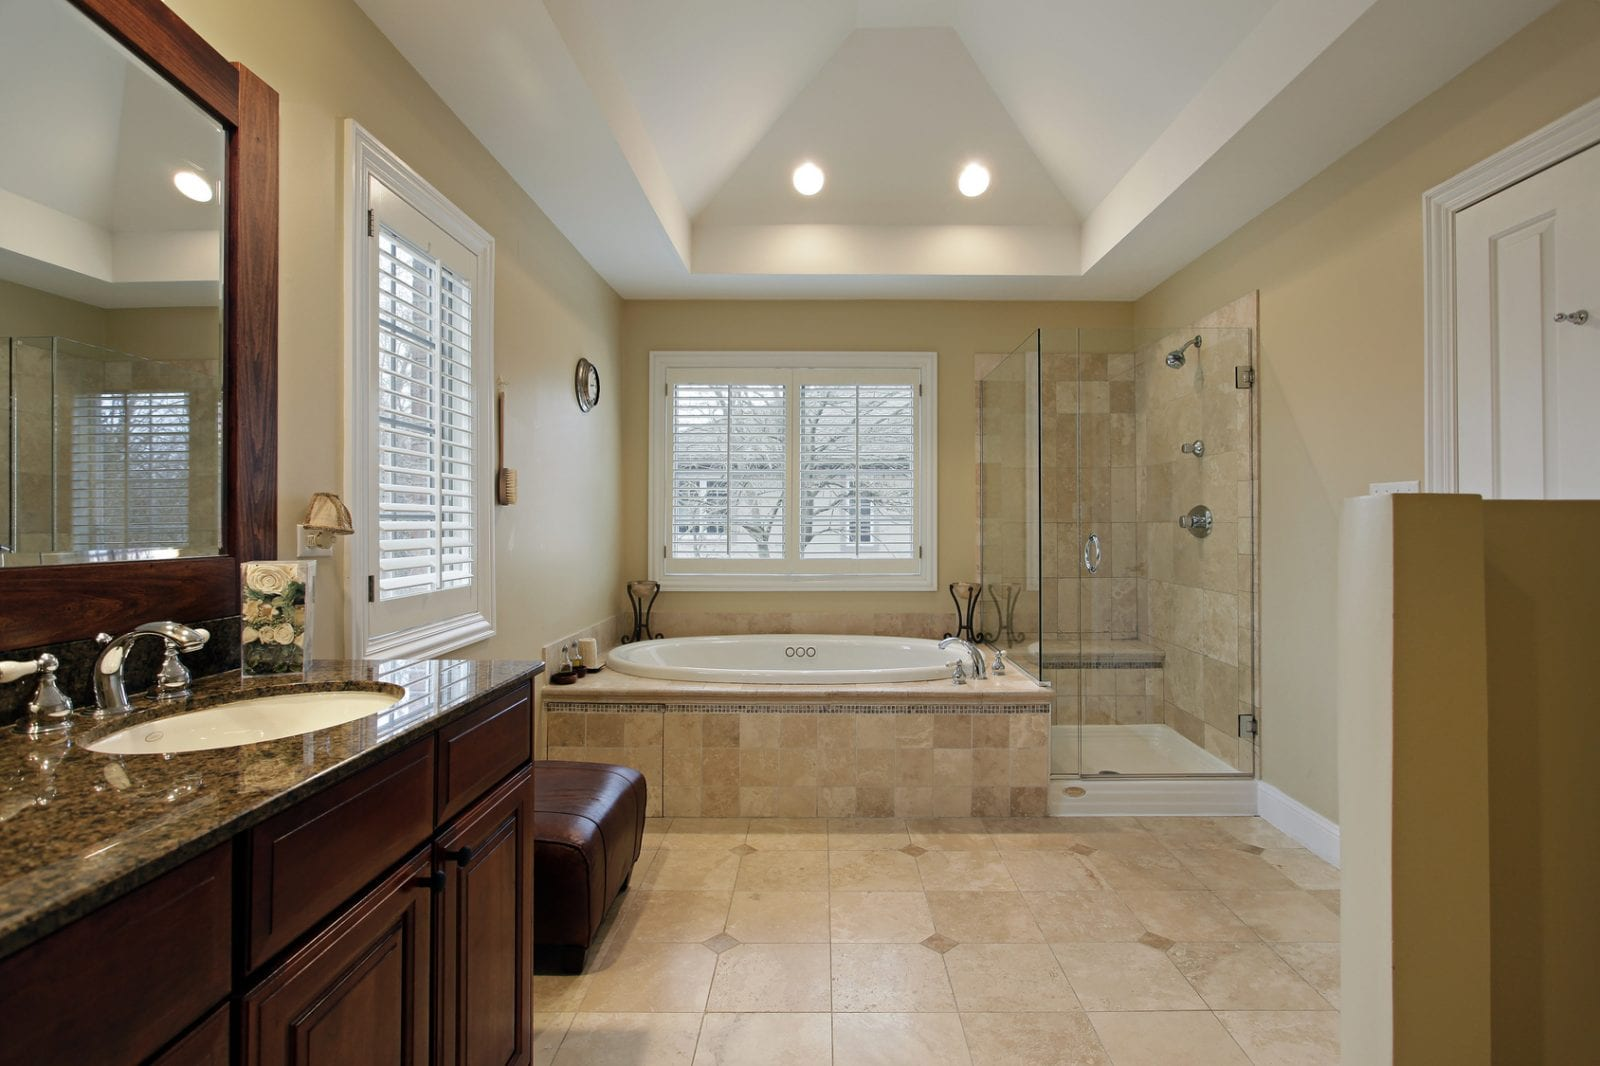 Custom Bathroom Vanities Fort Lauderdale home - kitchen and bath unlimited